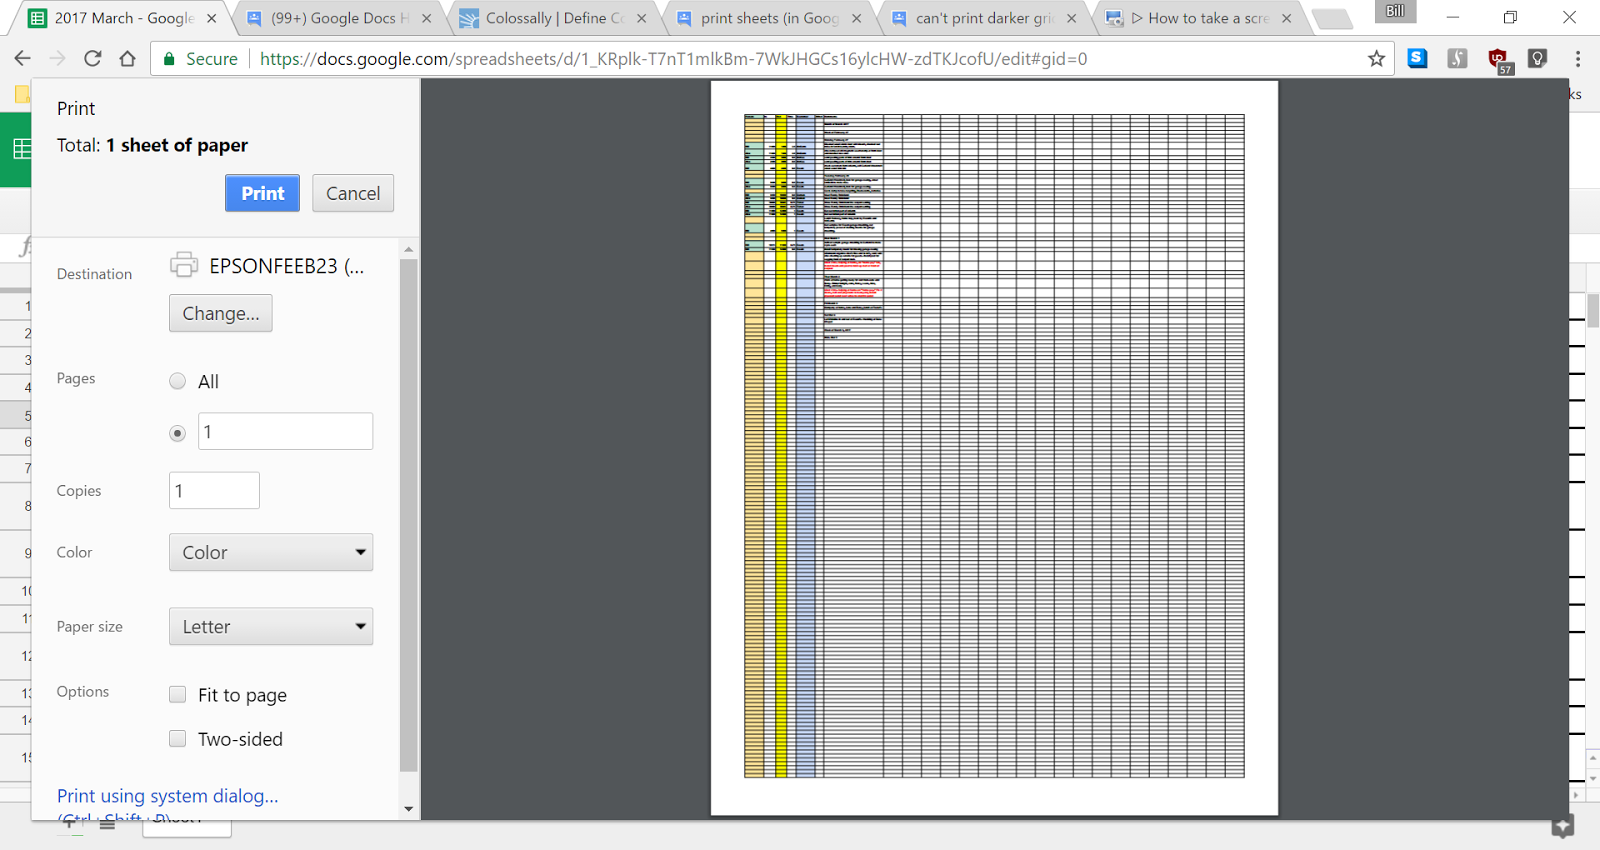 can't print darker gridlines on google sheets? seriously